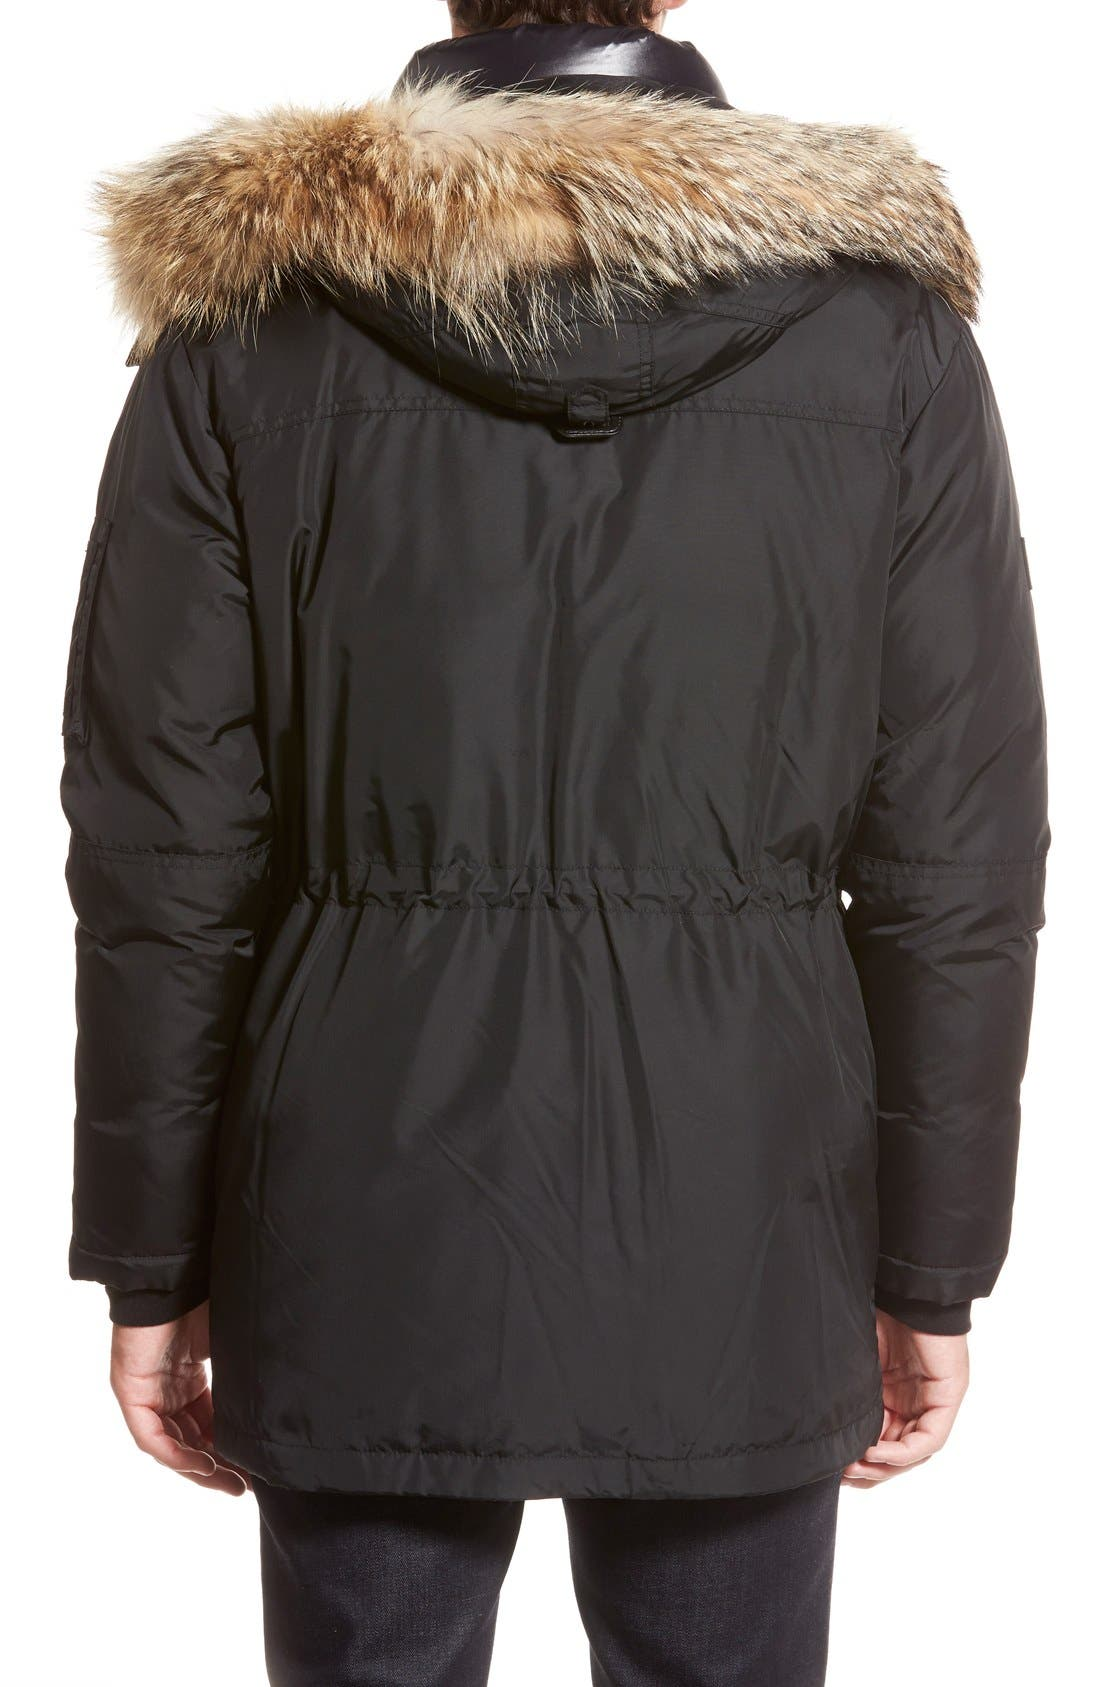 'Avalanche' Quilted Jacket with Genuine Coyote Fur Trim,                             Alternate thumbnail 2, color,                             001